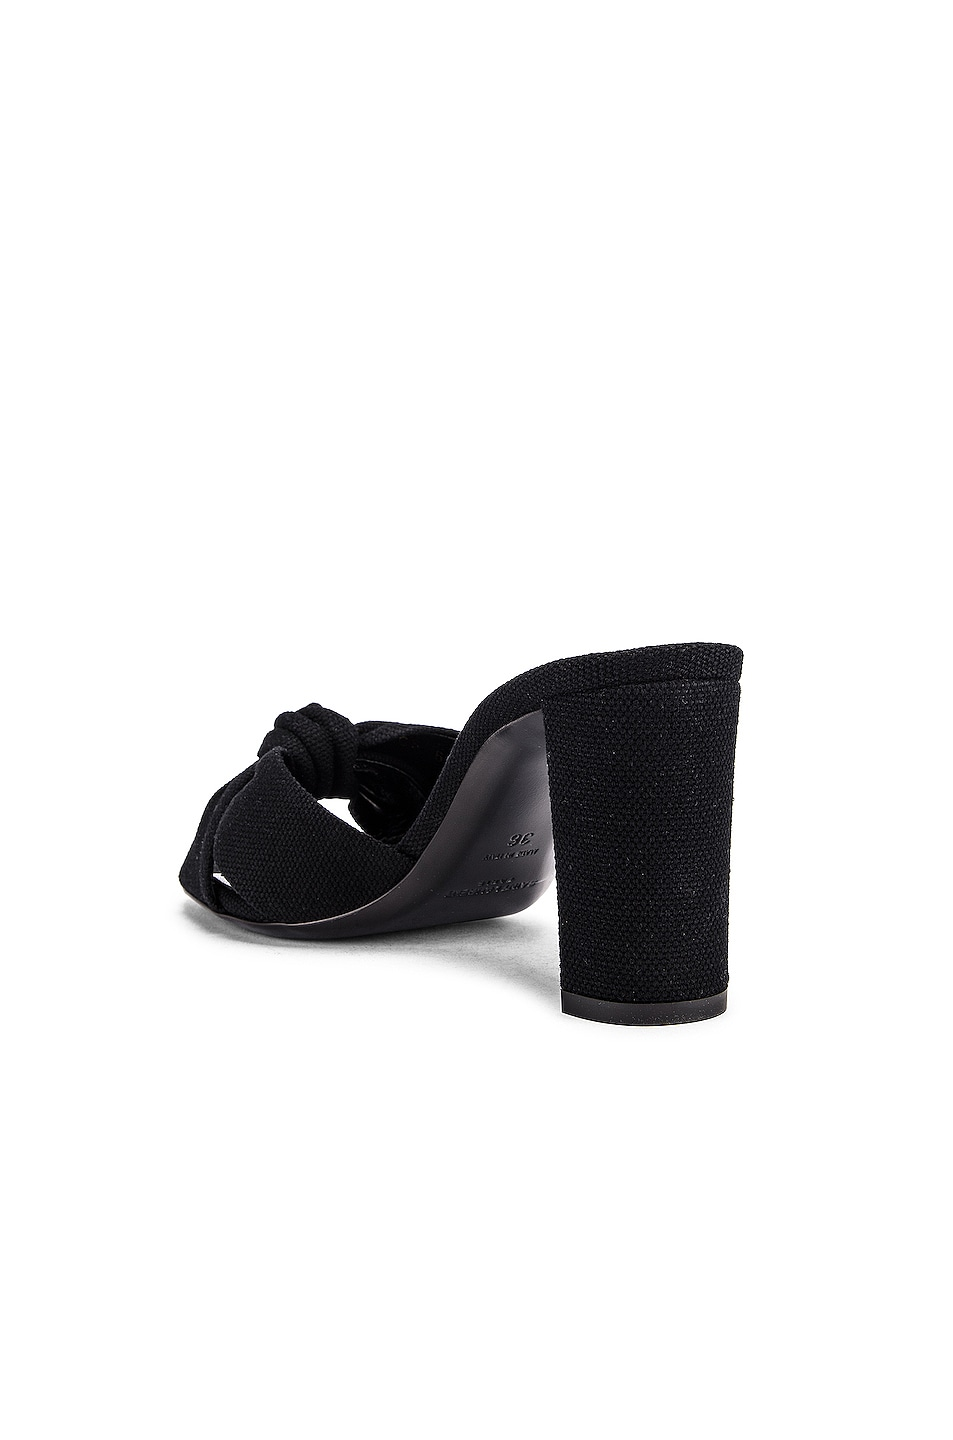 Image 3 of Saint Laurent Loulou Mule Sandals in Nero